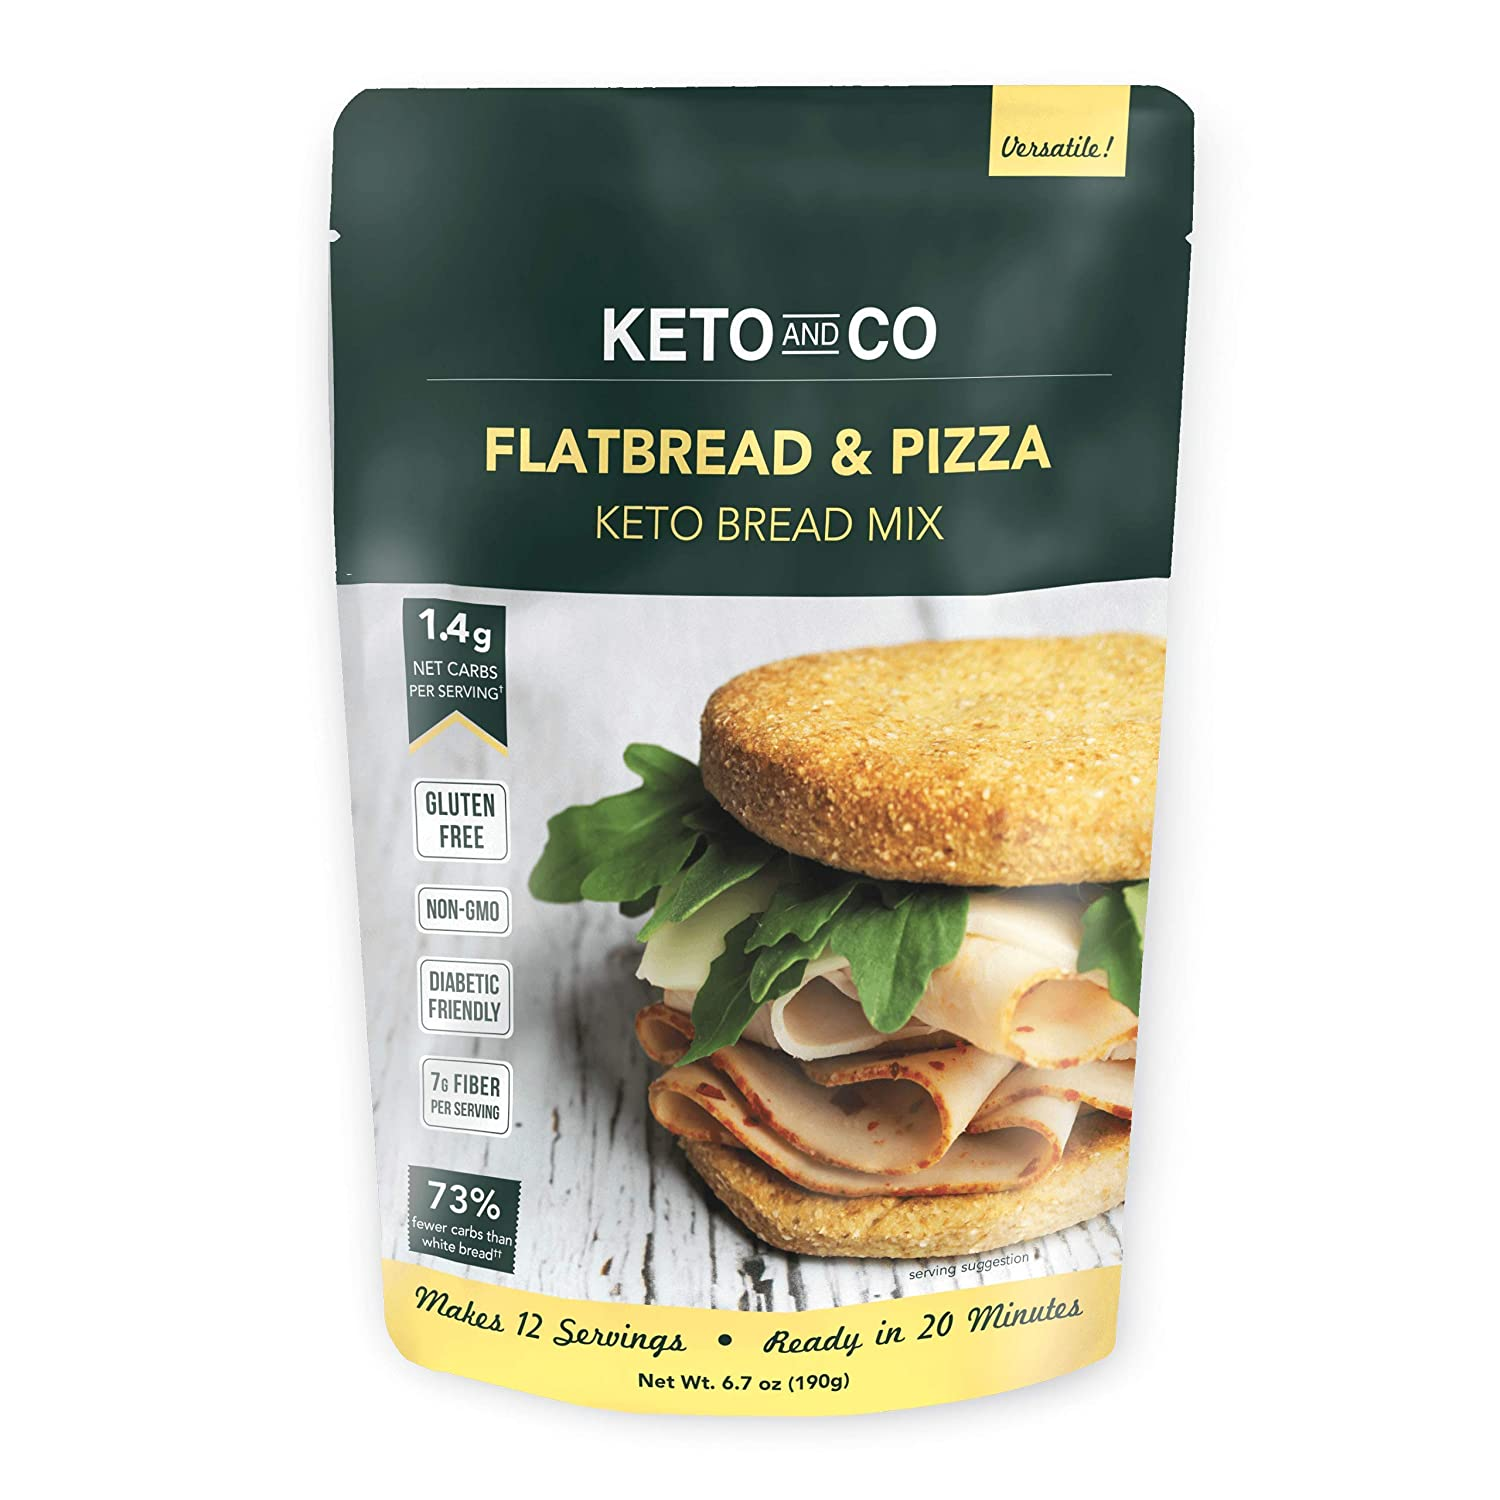 Keto Flatbread Pizza Bread Mix Popular products by Manufacturer regenerated product Net Co Just 1.4g and